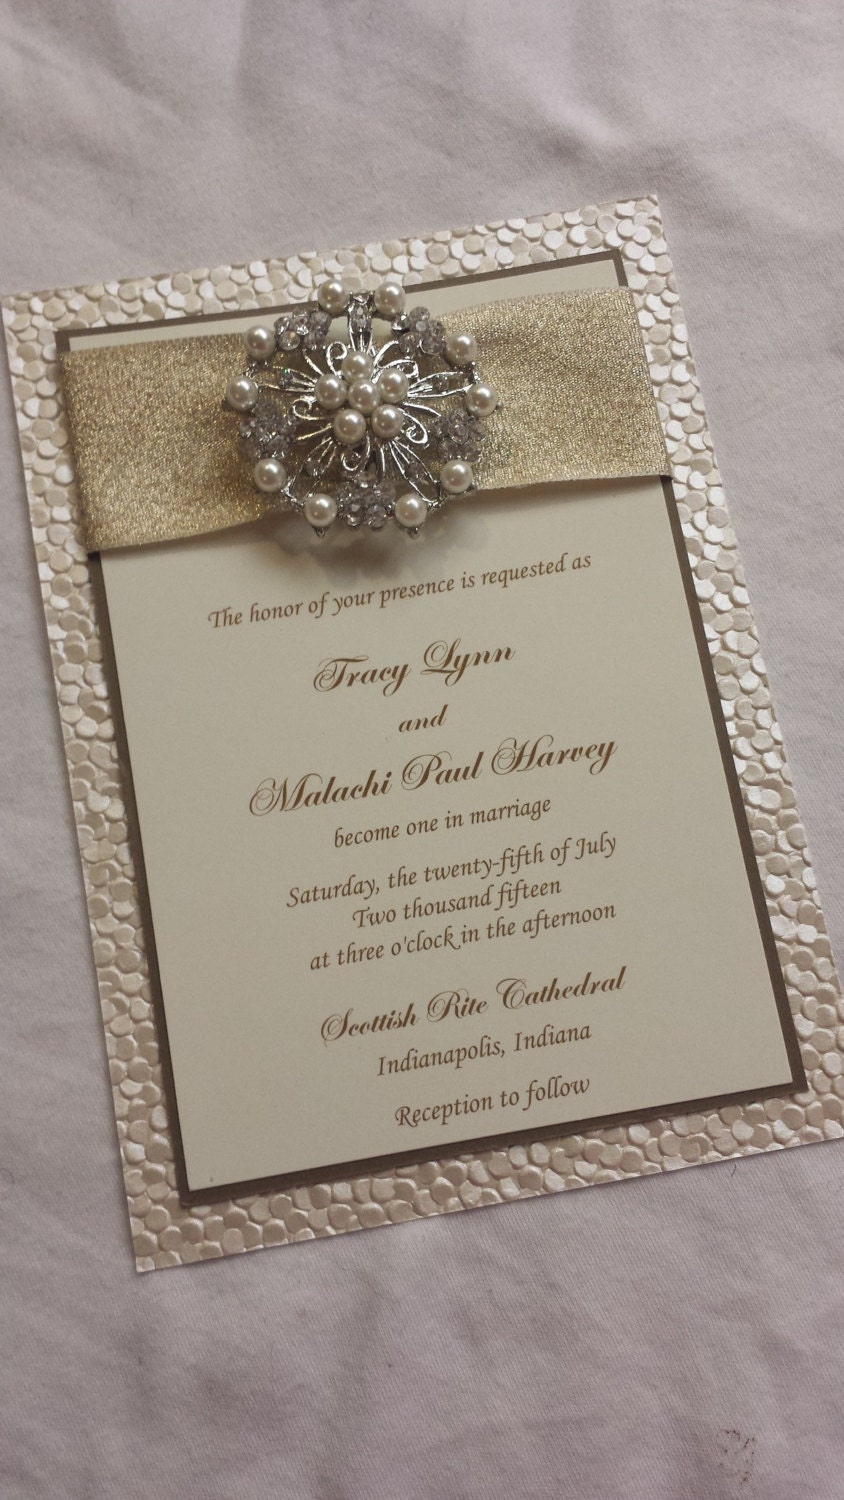 Damask Invitations is great invitations layout